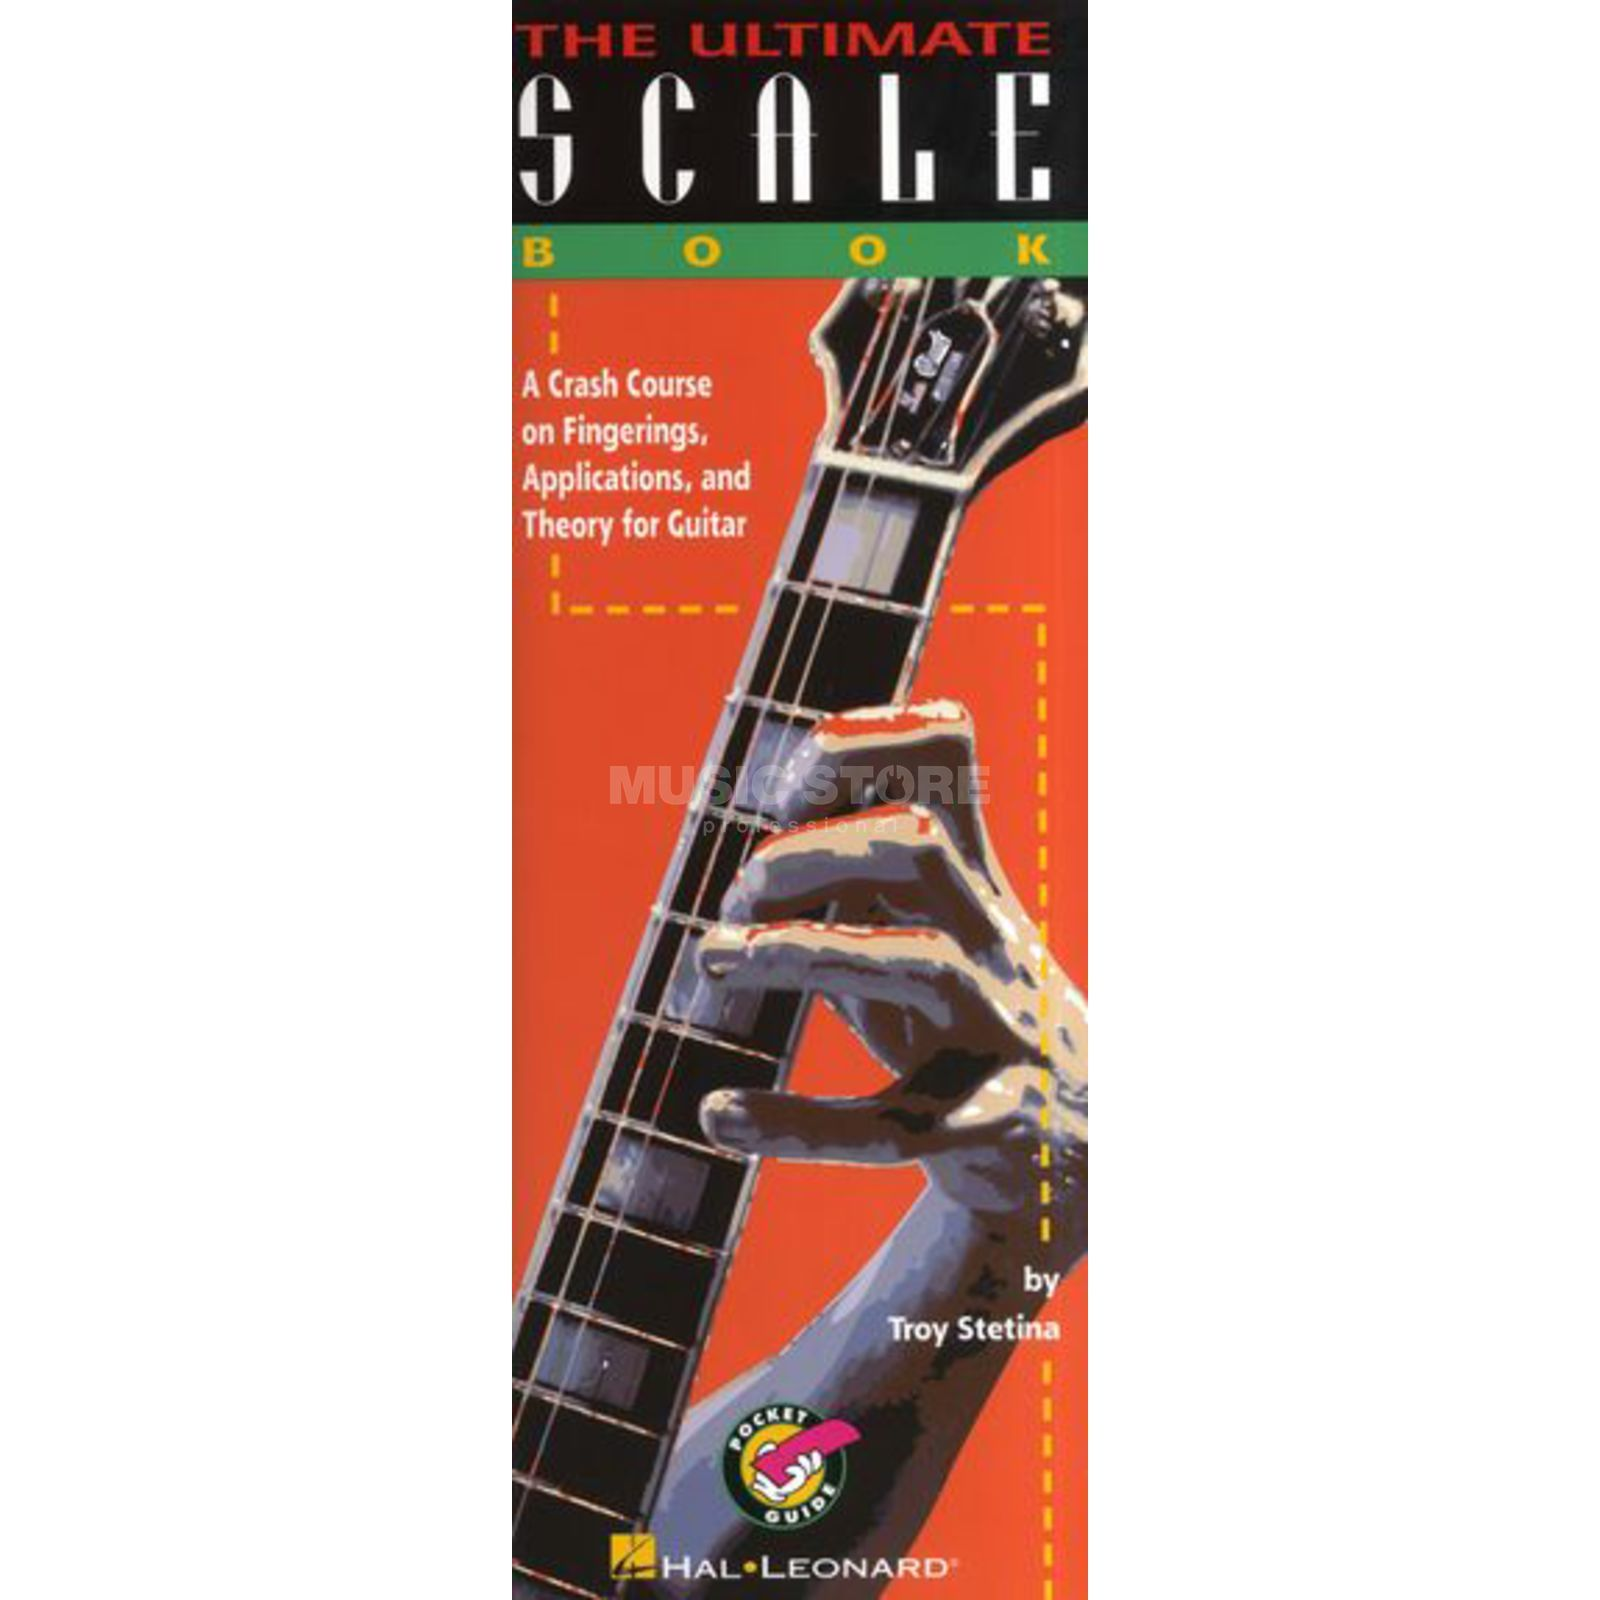 Hal Leonard Troy Stetina: The Ultimate Scale Book Produktbild